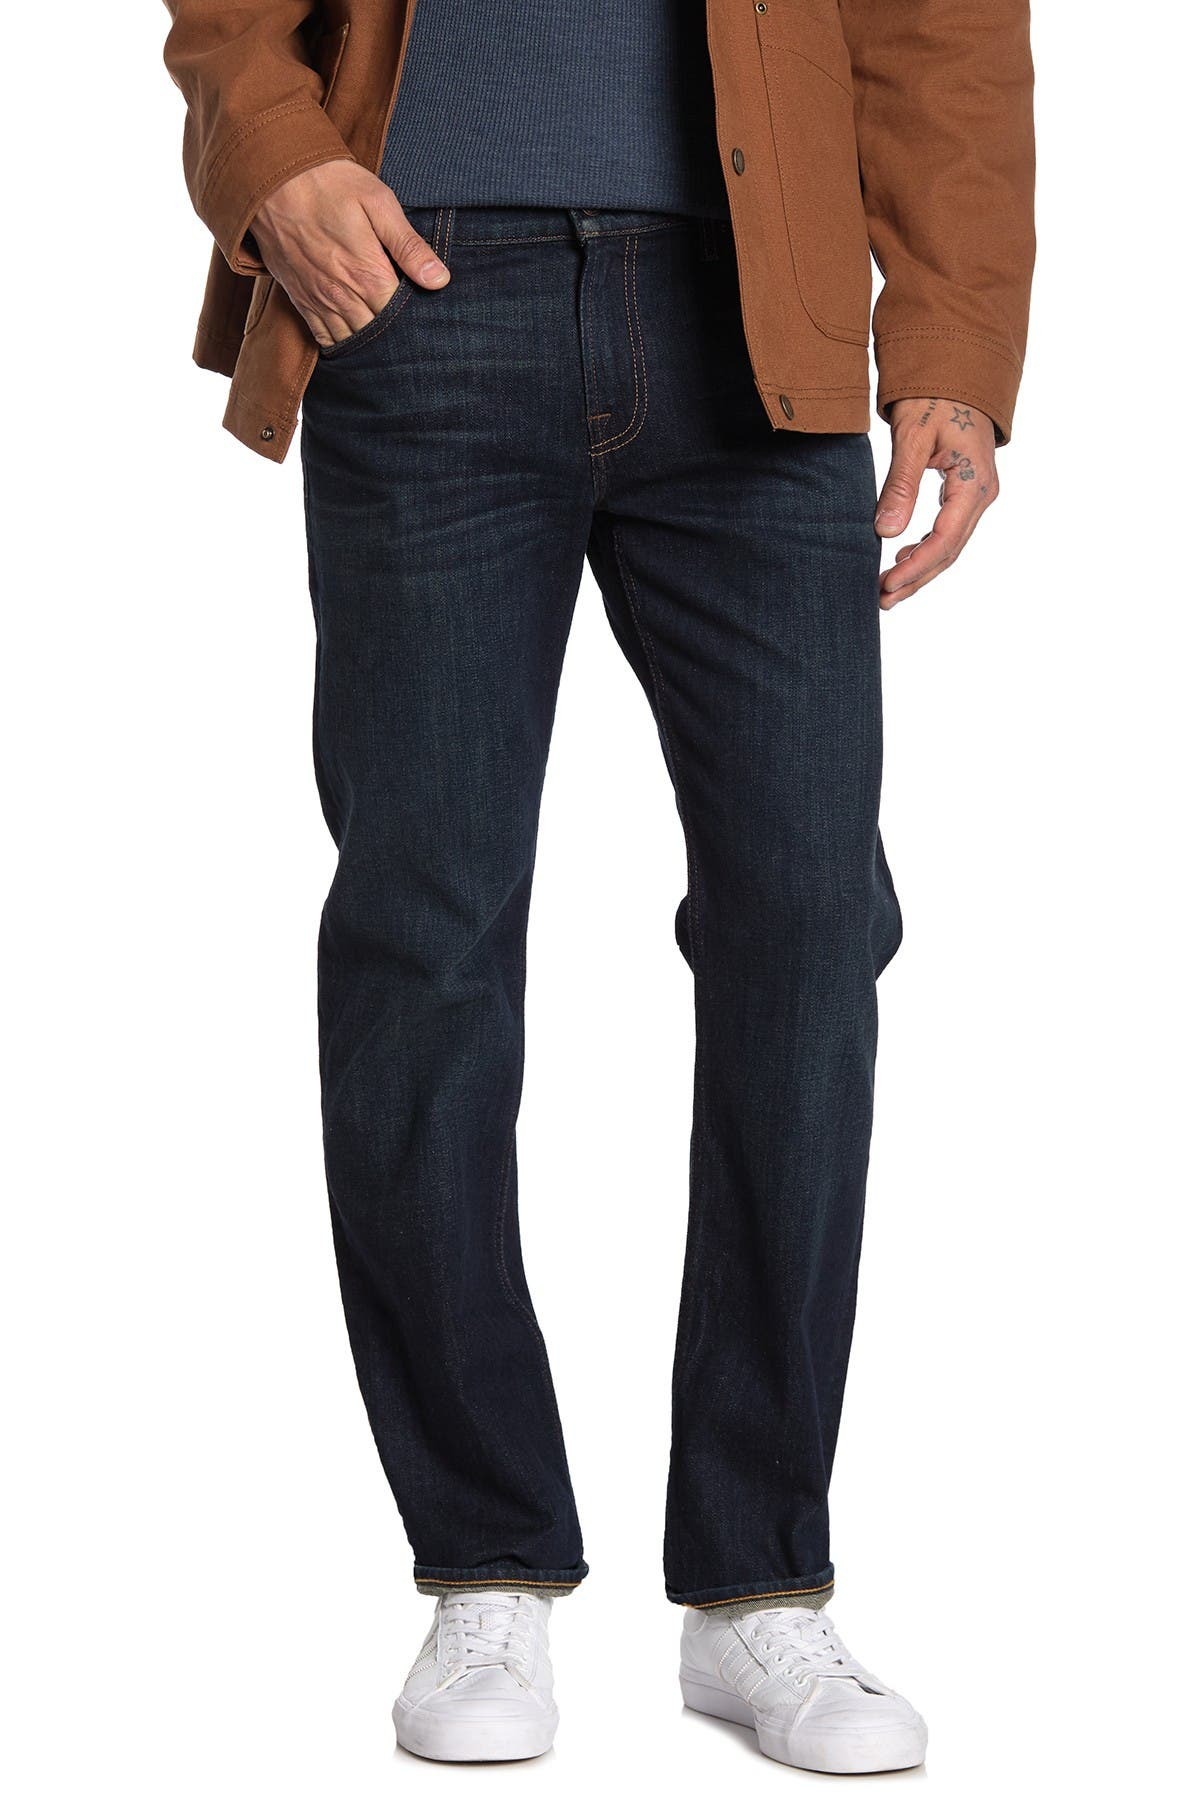 Image of 7 For All Mankind Standard Slim Straight Jeans